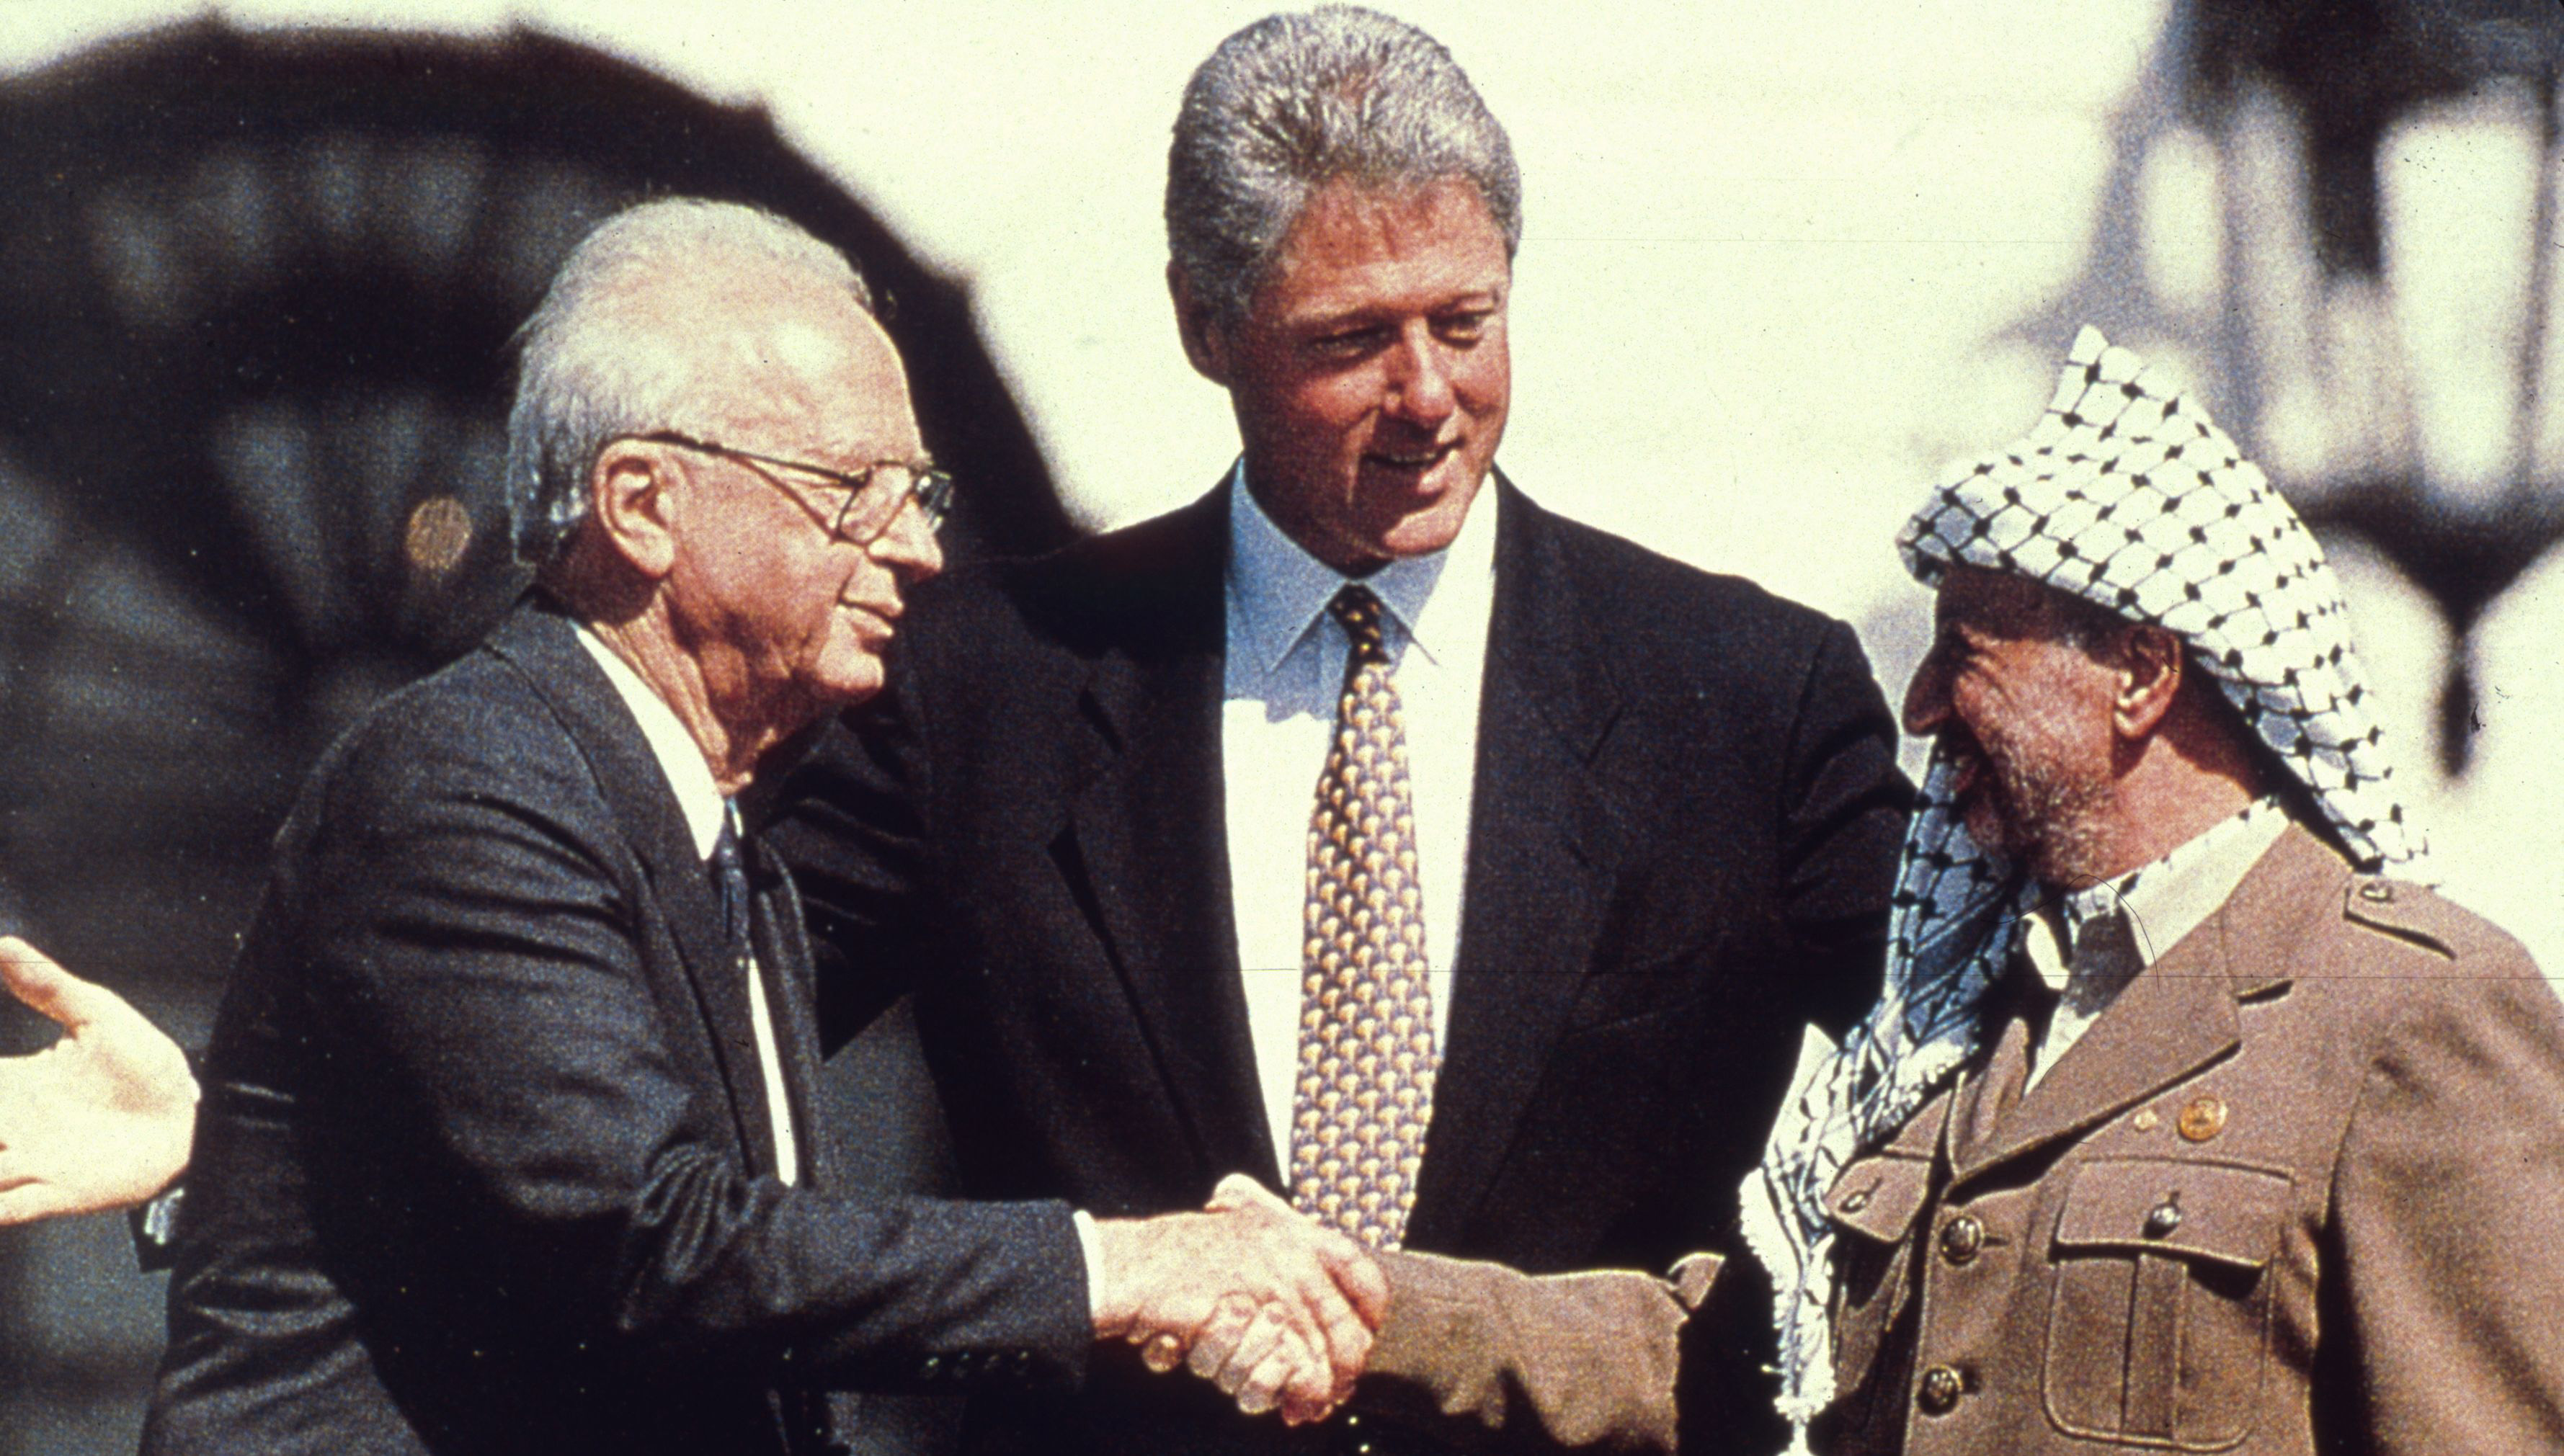 The Oslo Accords 25 years on